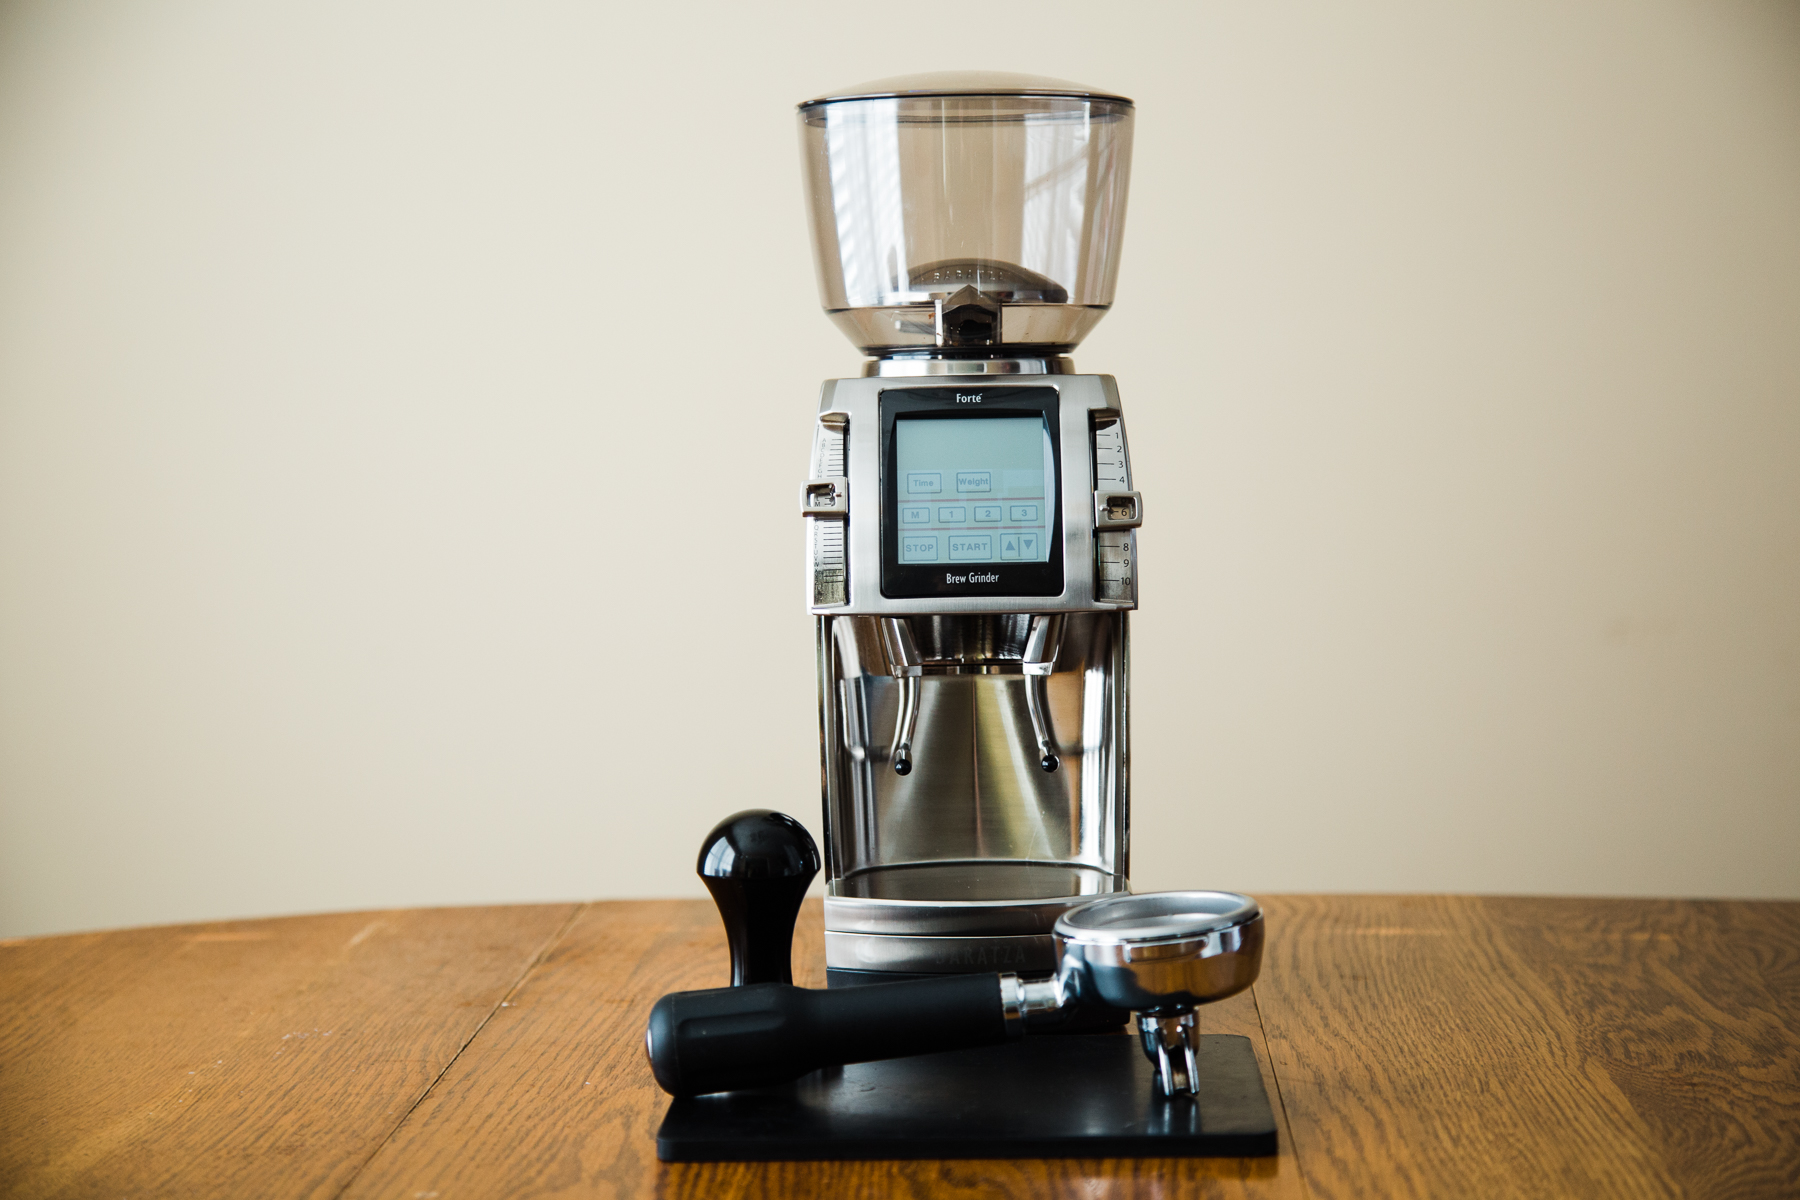 A Baratza Forte on a table with various espresso brewing equipment.